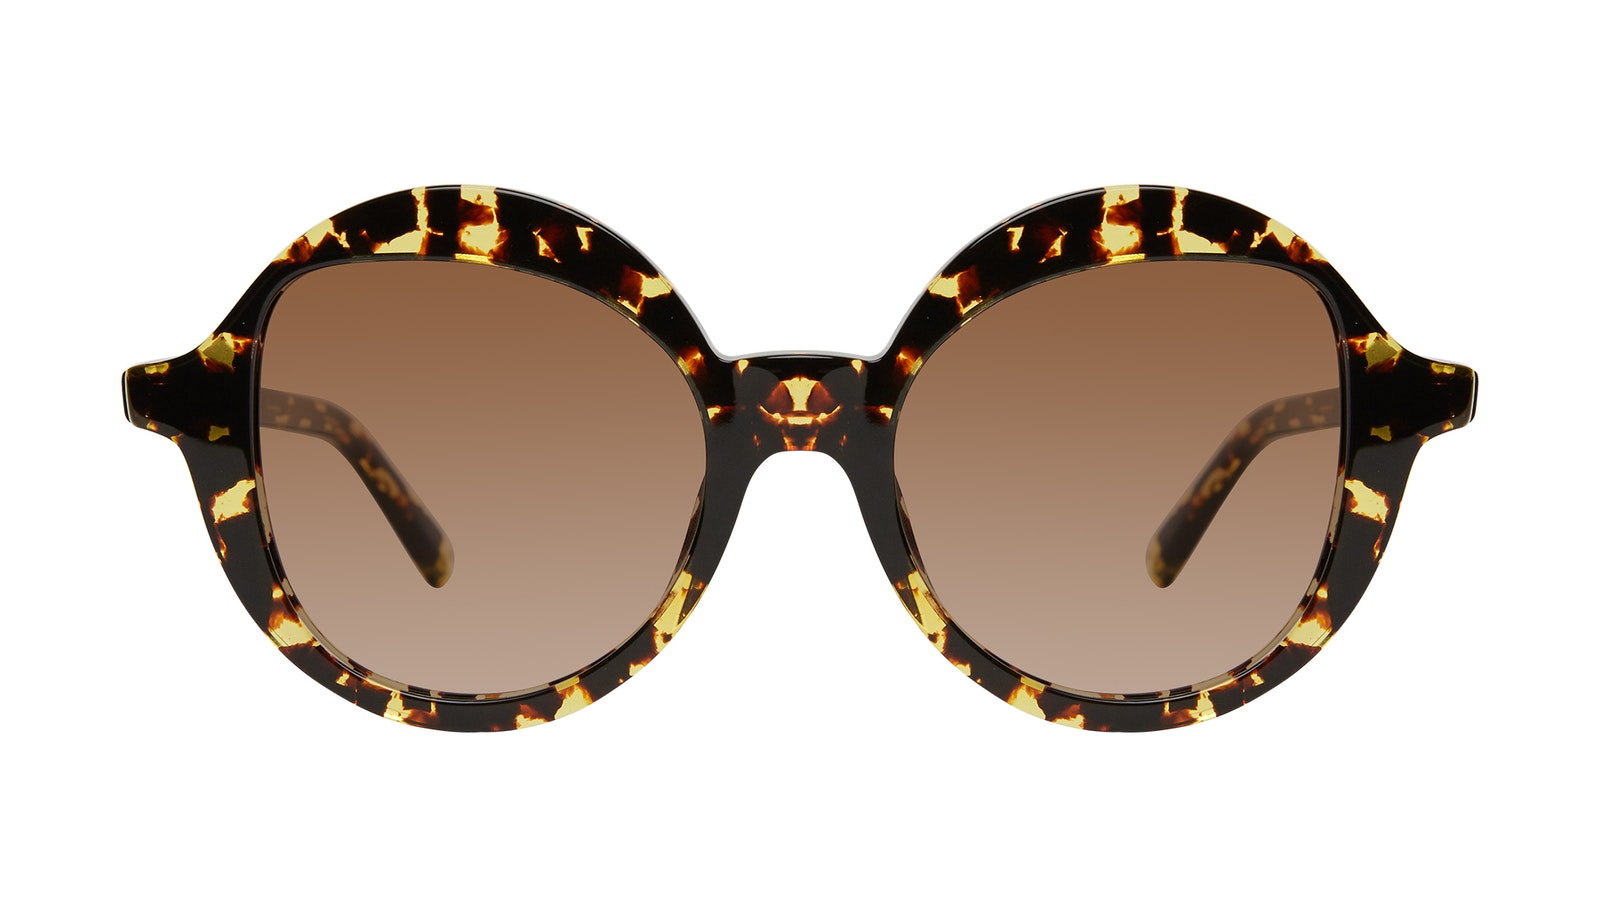 Affordable Fashion Glasses Round Sunglasses Women Stardom Gold Flake